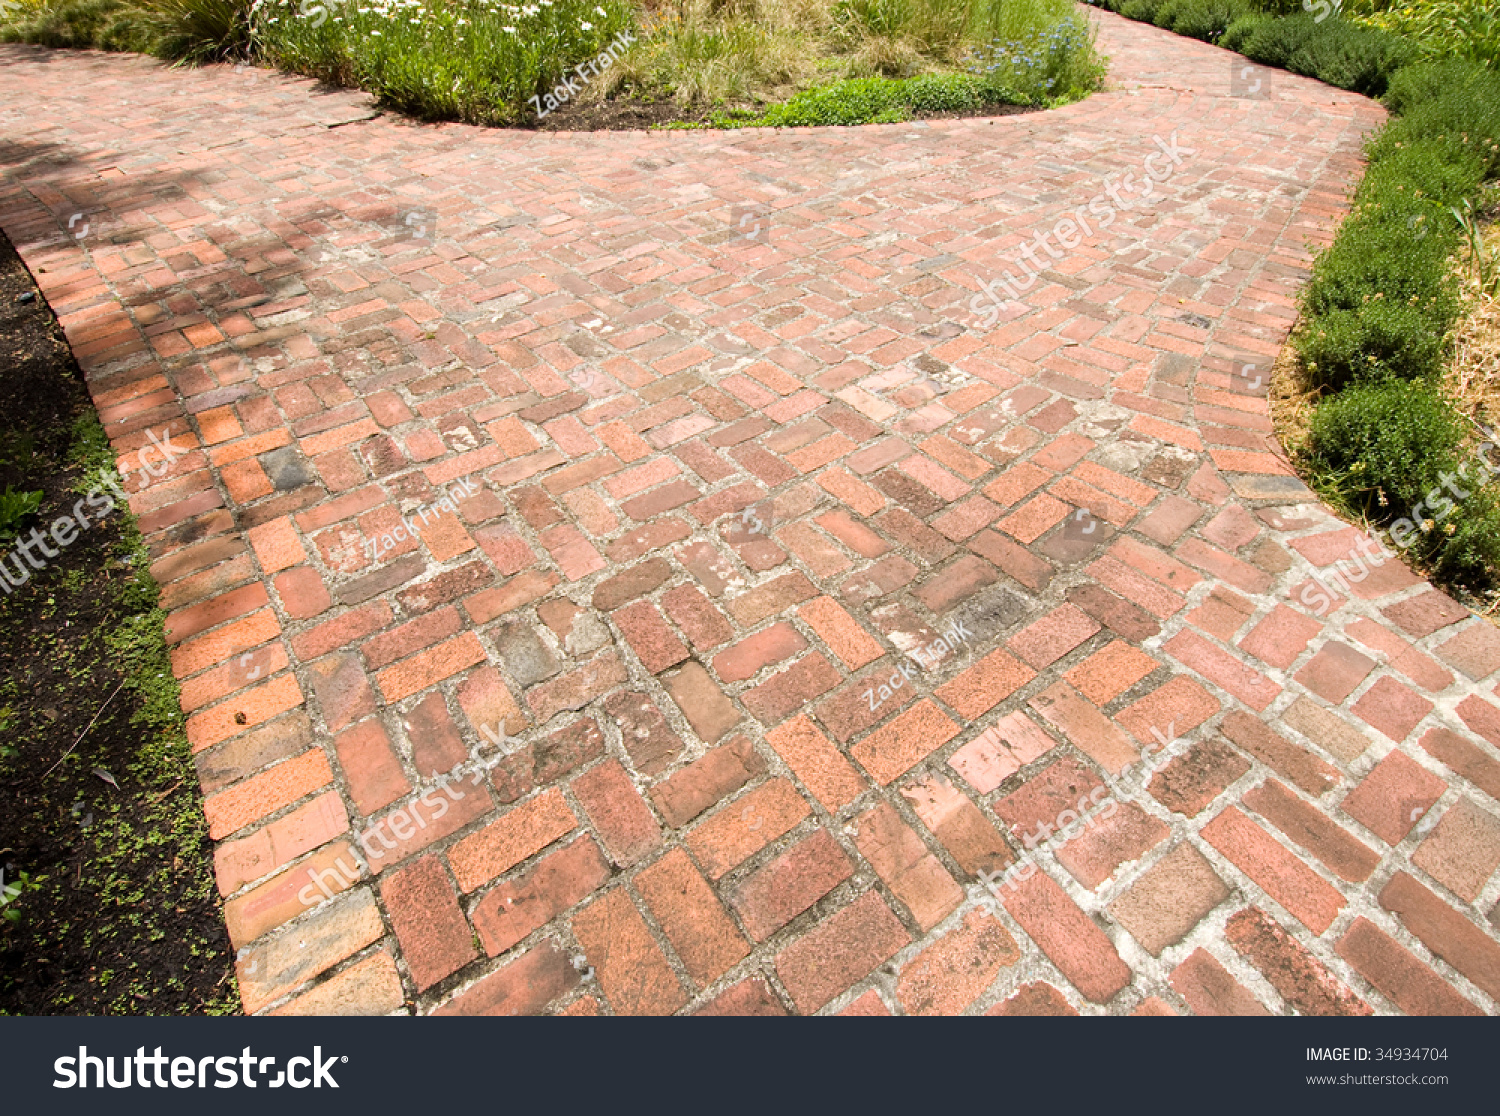 Luther Burbank Home And Gardens Brick Path Stock Photo